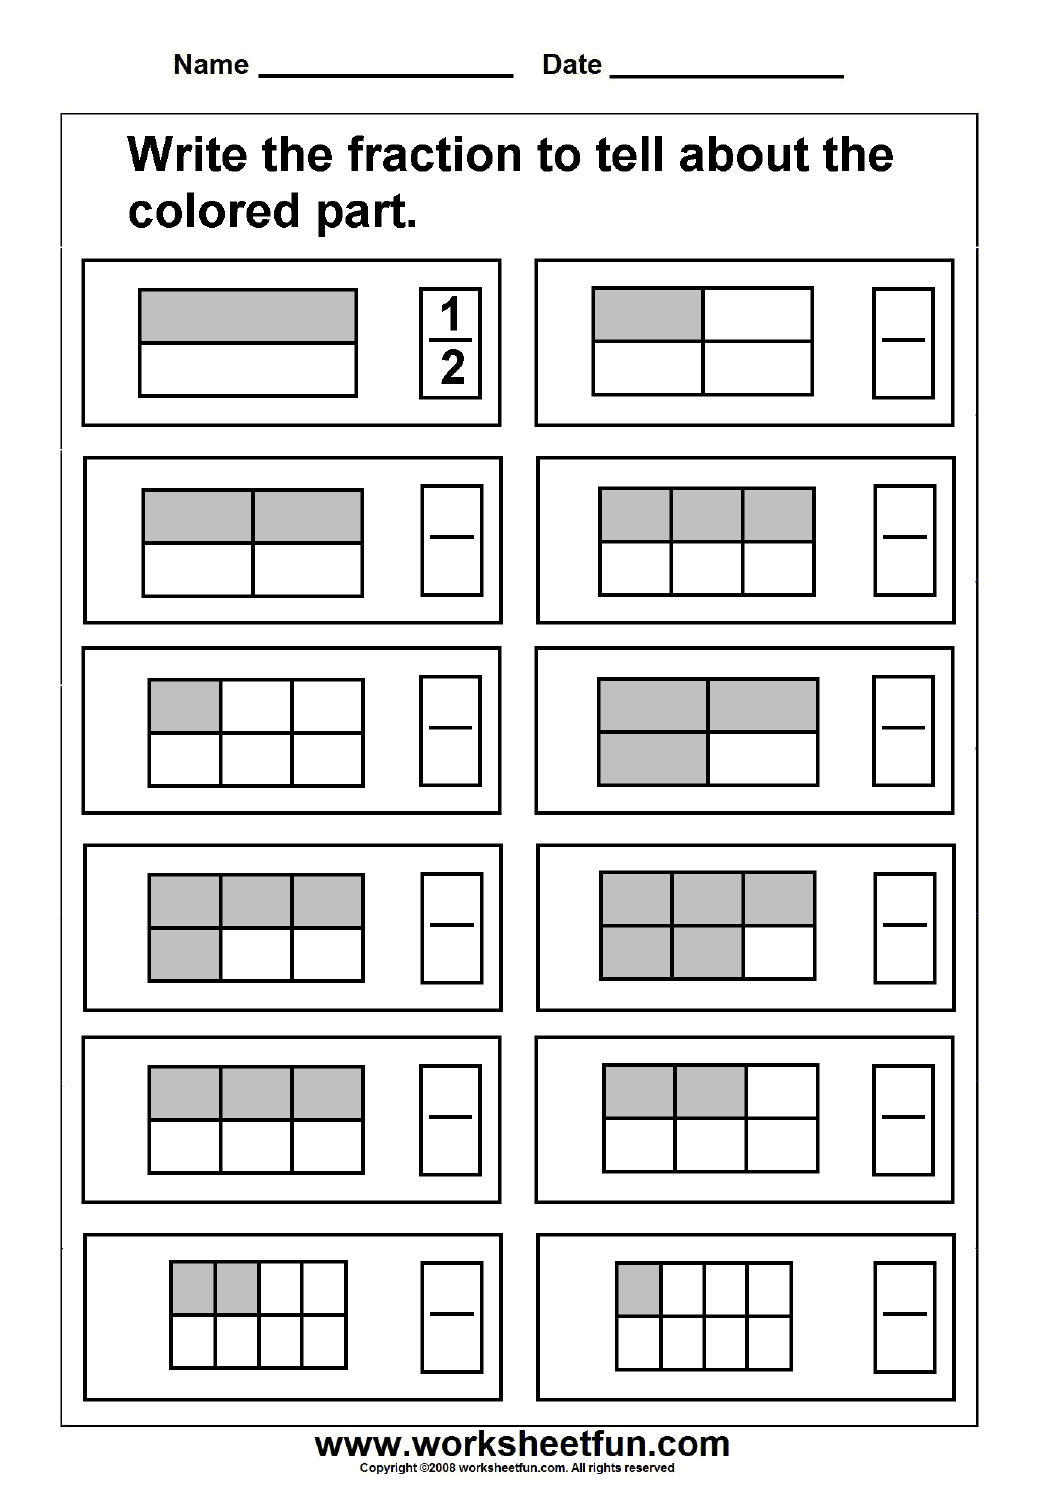 Fraction FREE Printable Worksheets Worksheetfun – Grade 1 Fractions Worksheets